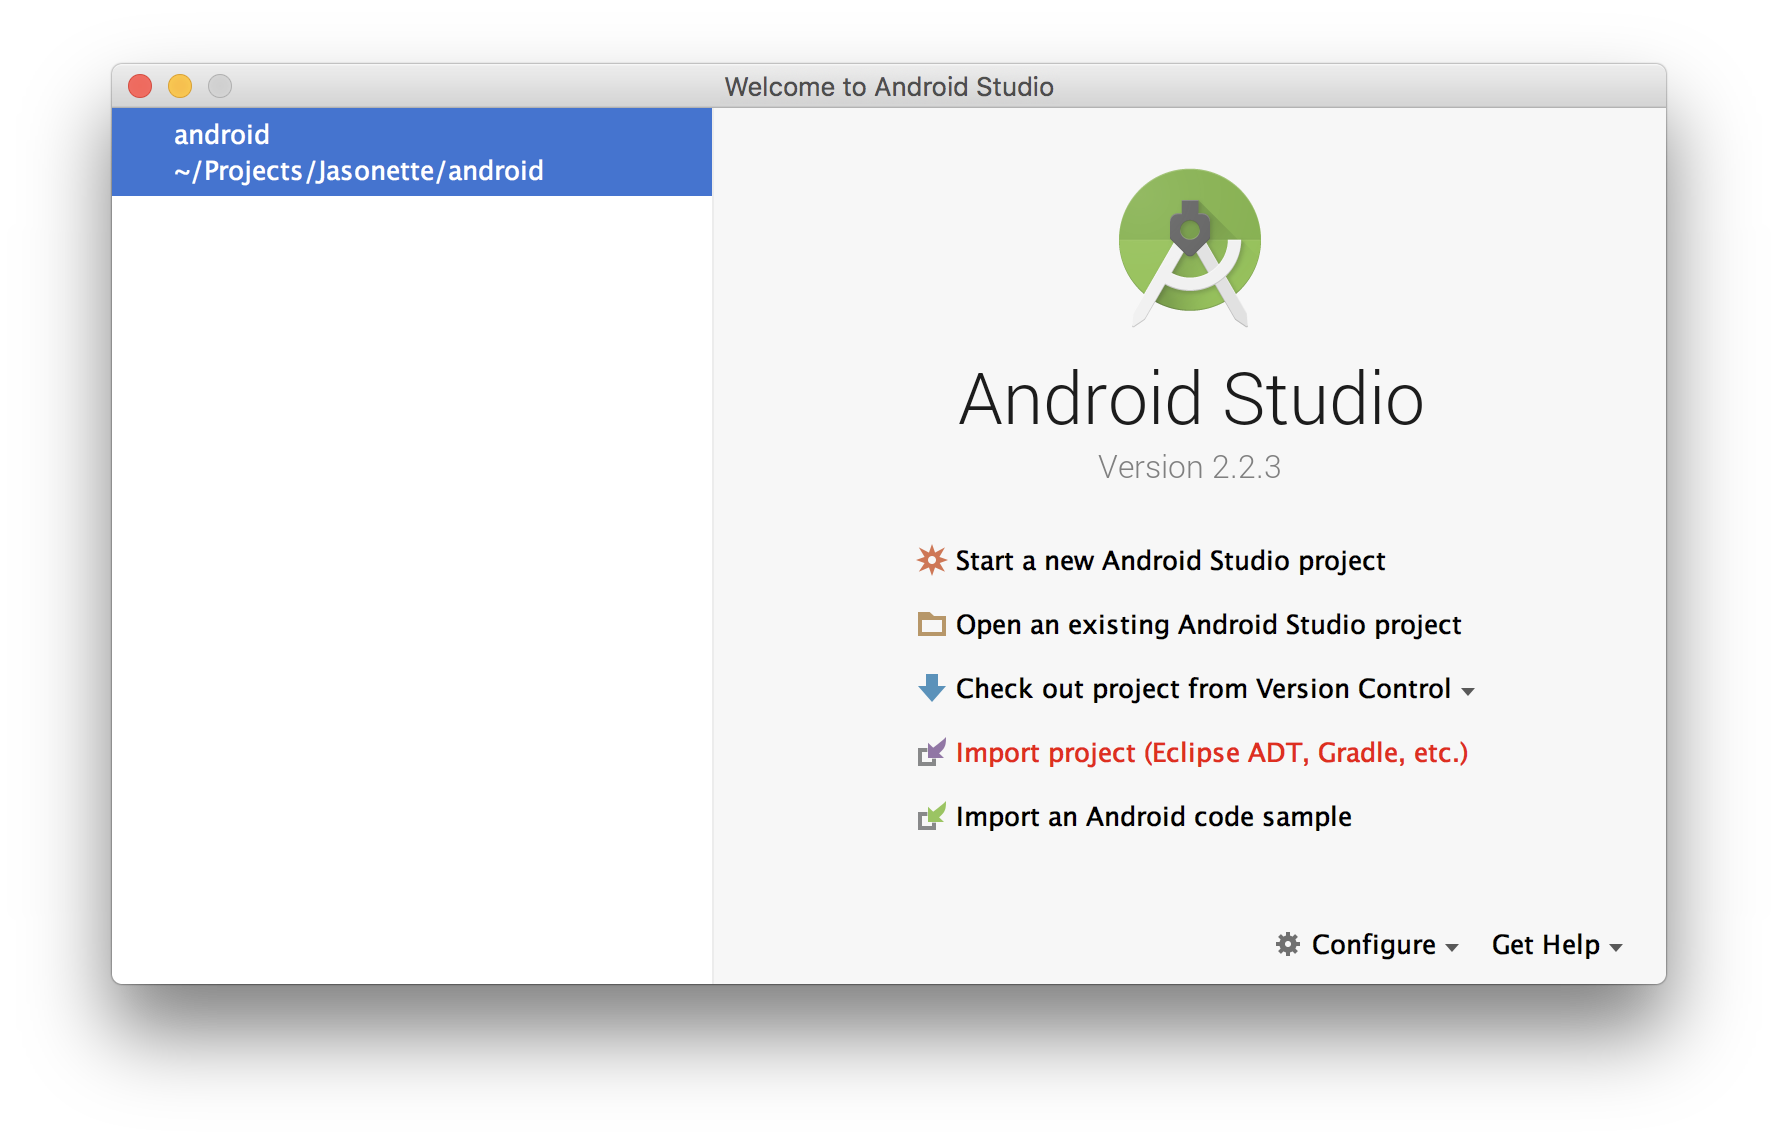 Android studio import png. Jasonette now launch